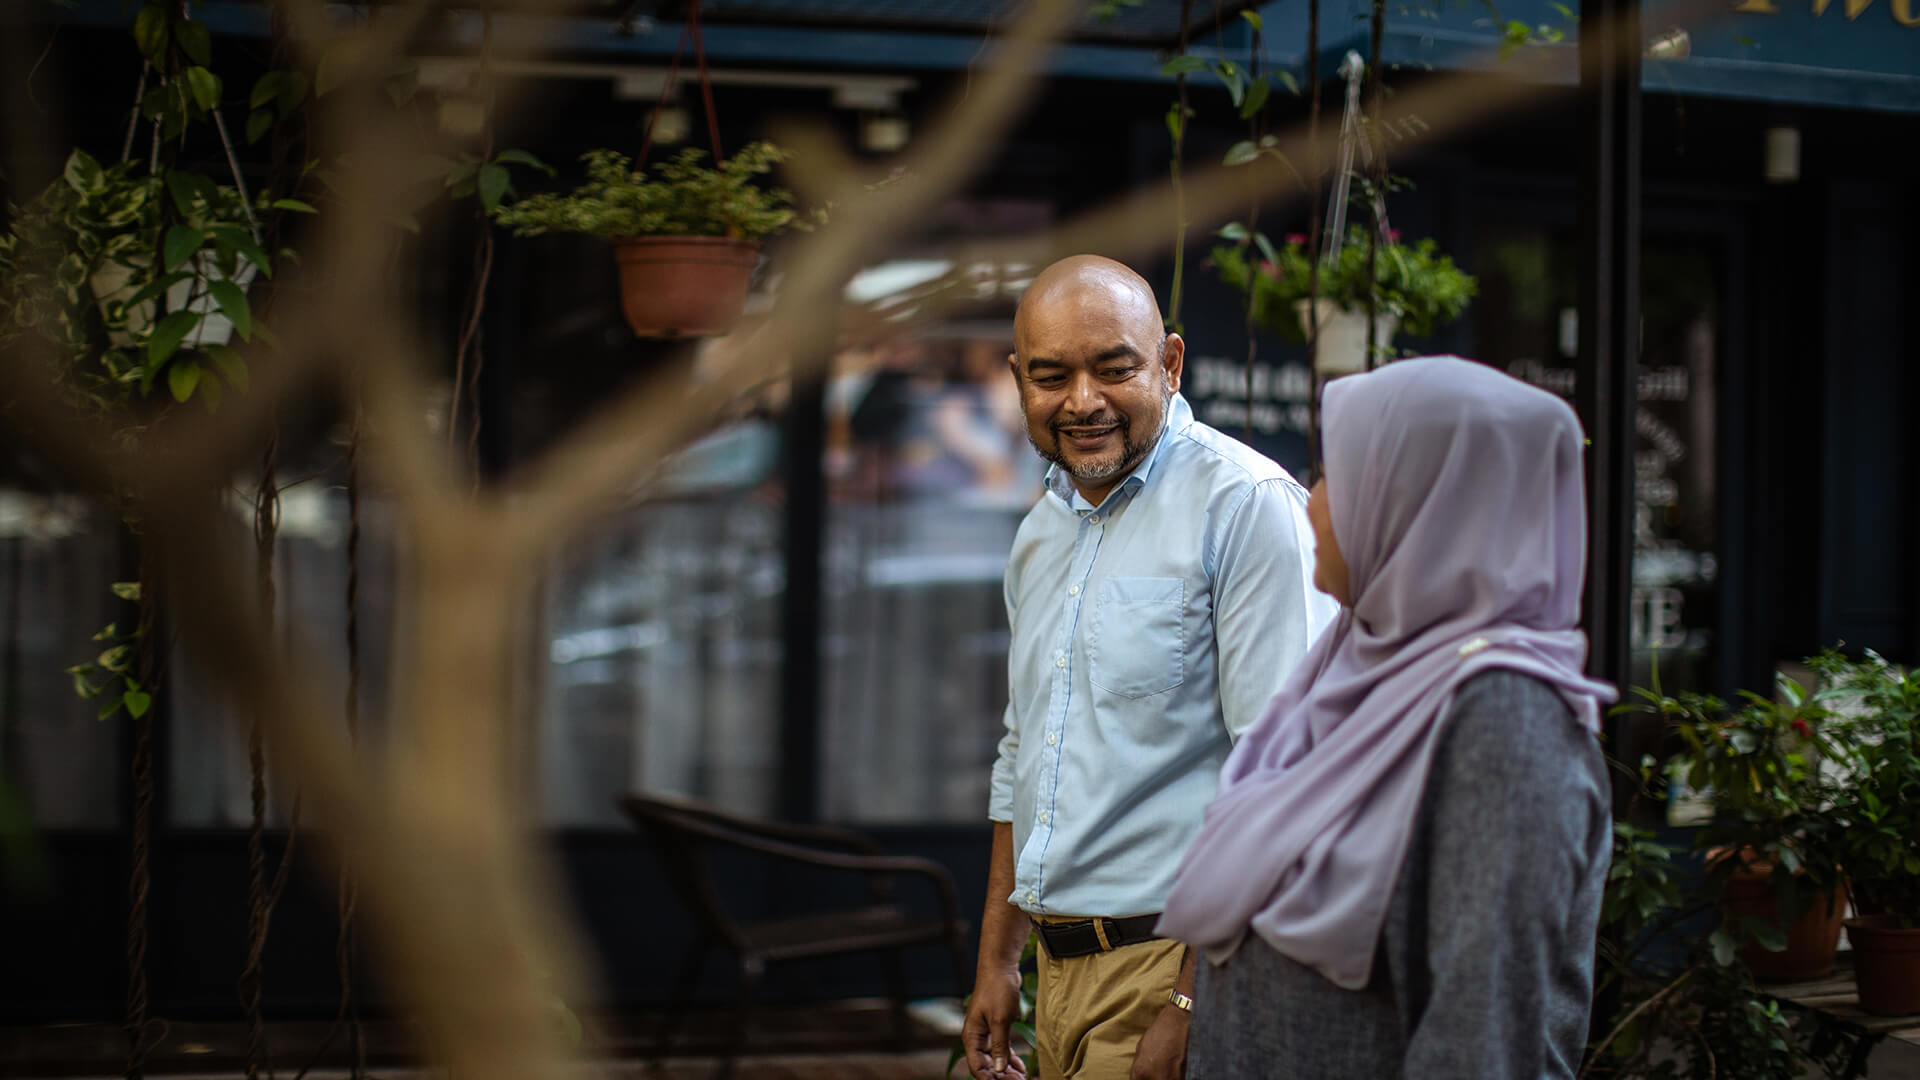 Muslim Dating symbolized by a muslim man and woman strolling through a park in UK